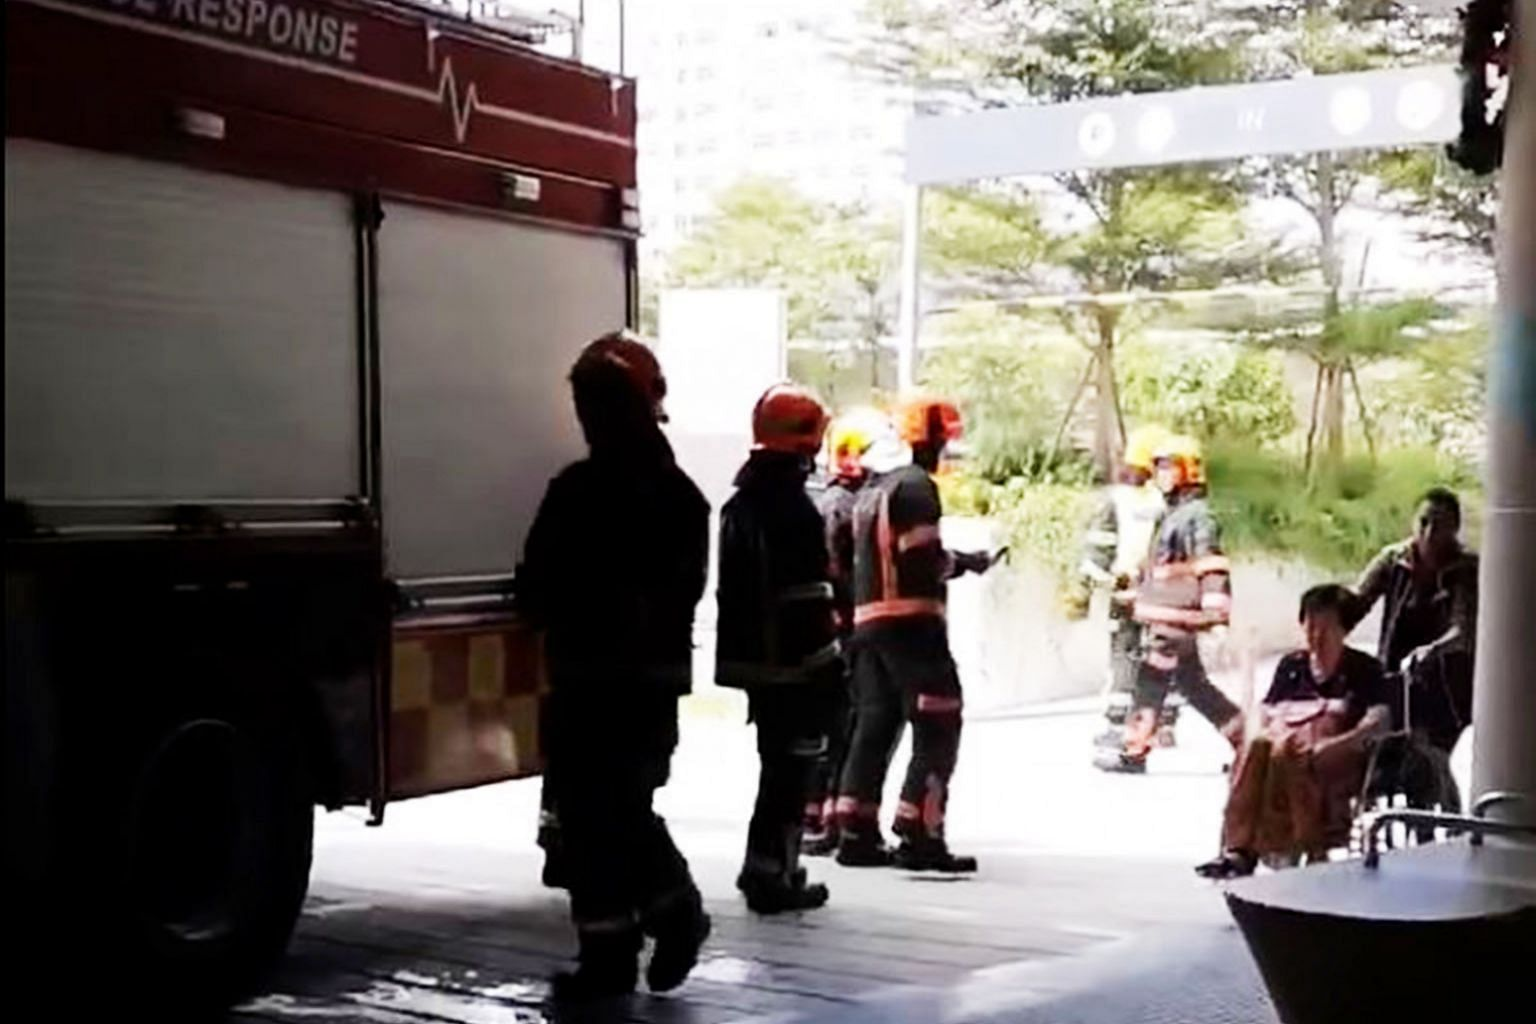 No one was injured and the cause of the fire is still being investigated by the Singapore Civil Defence Force.